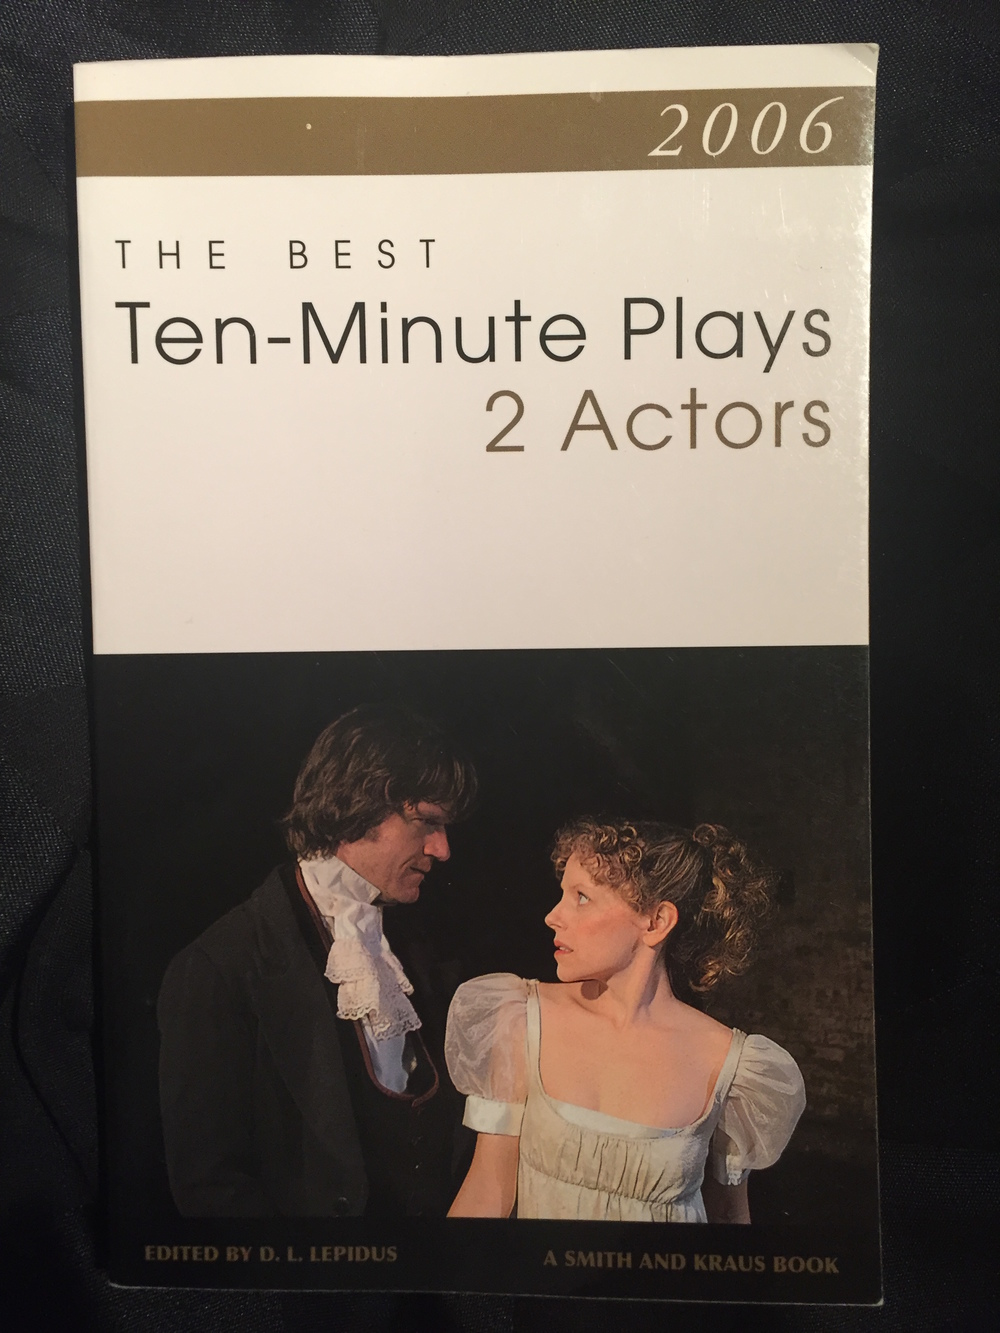 Double D   - The Best 10-Minute Plays for 2 Actors, Smith & Kraus, 2007